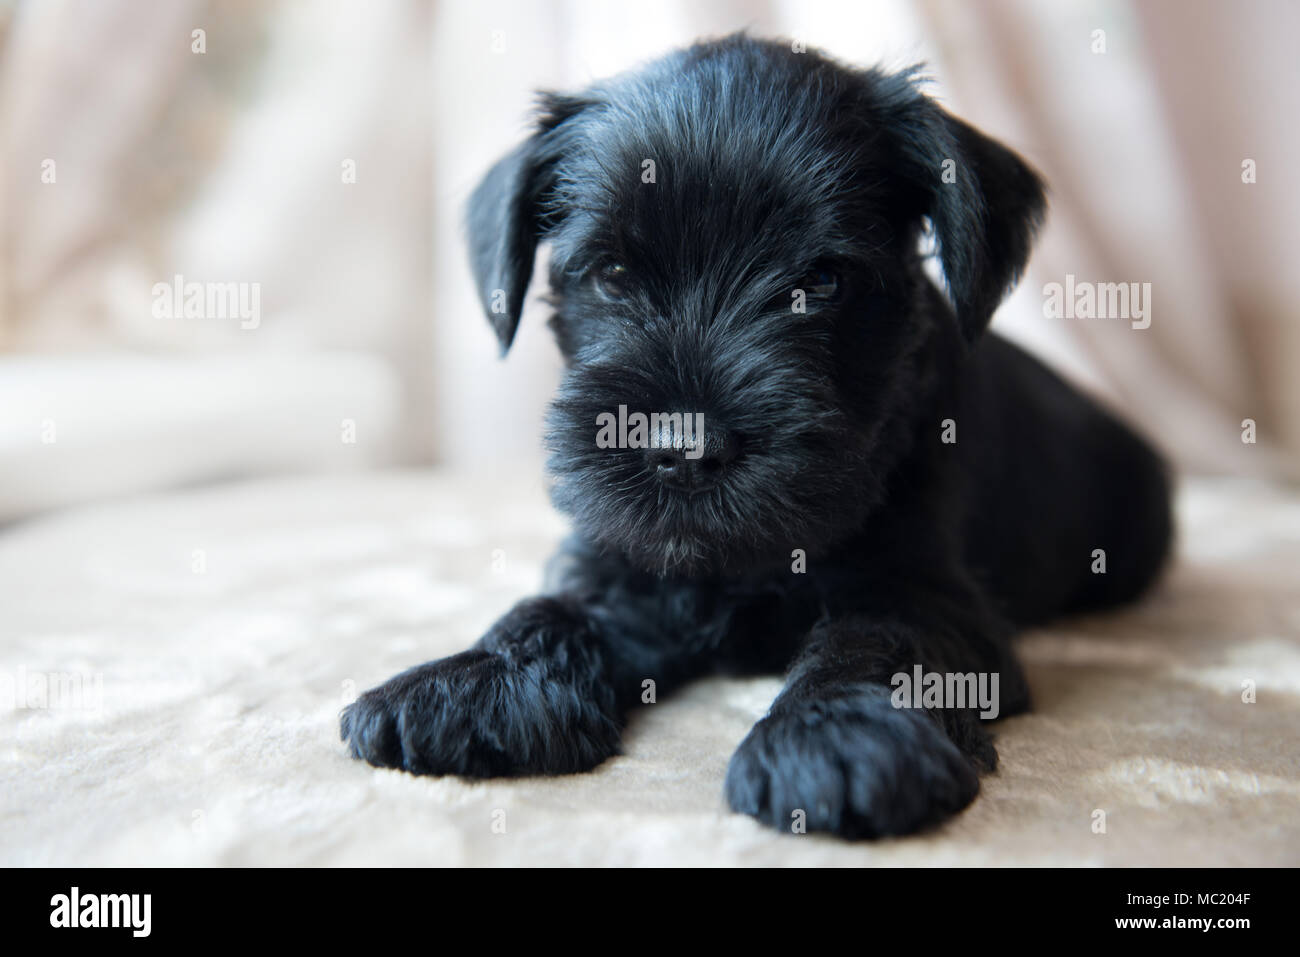 Miniature Schnauzer Puppy High Resolution Stock Photography And Images Alamy